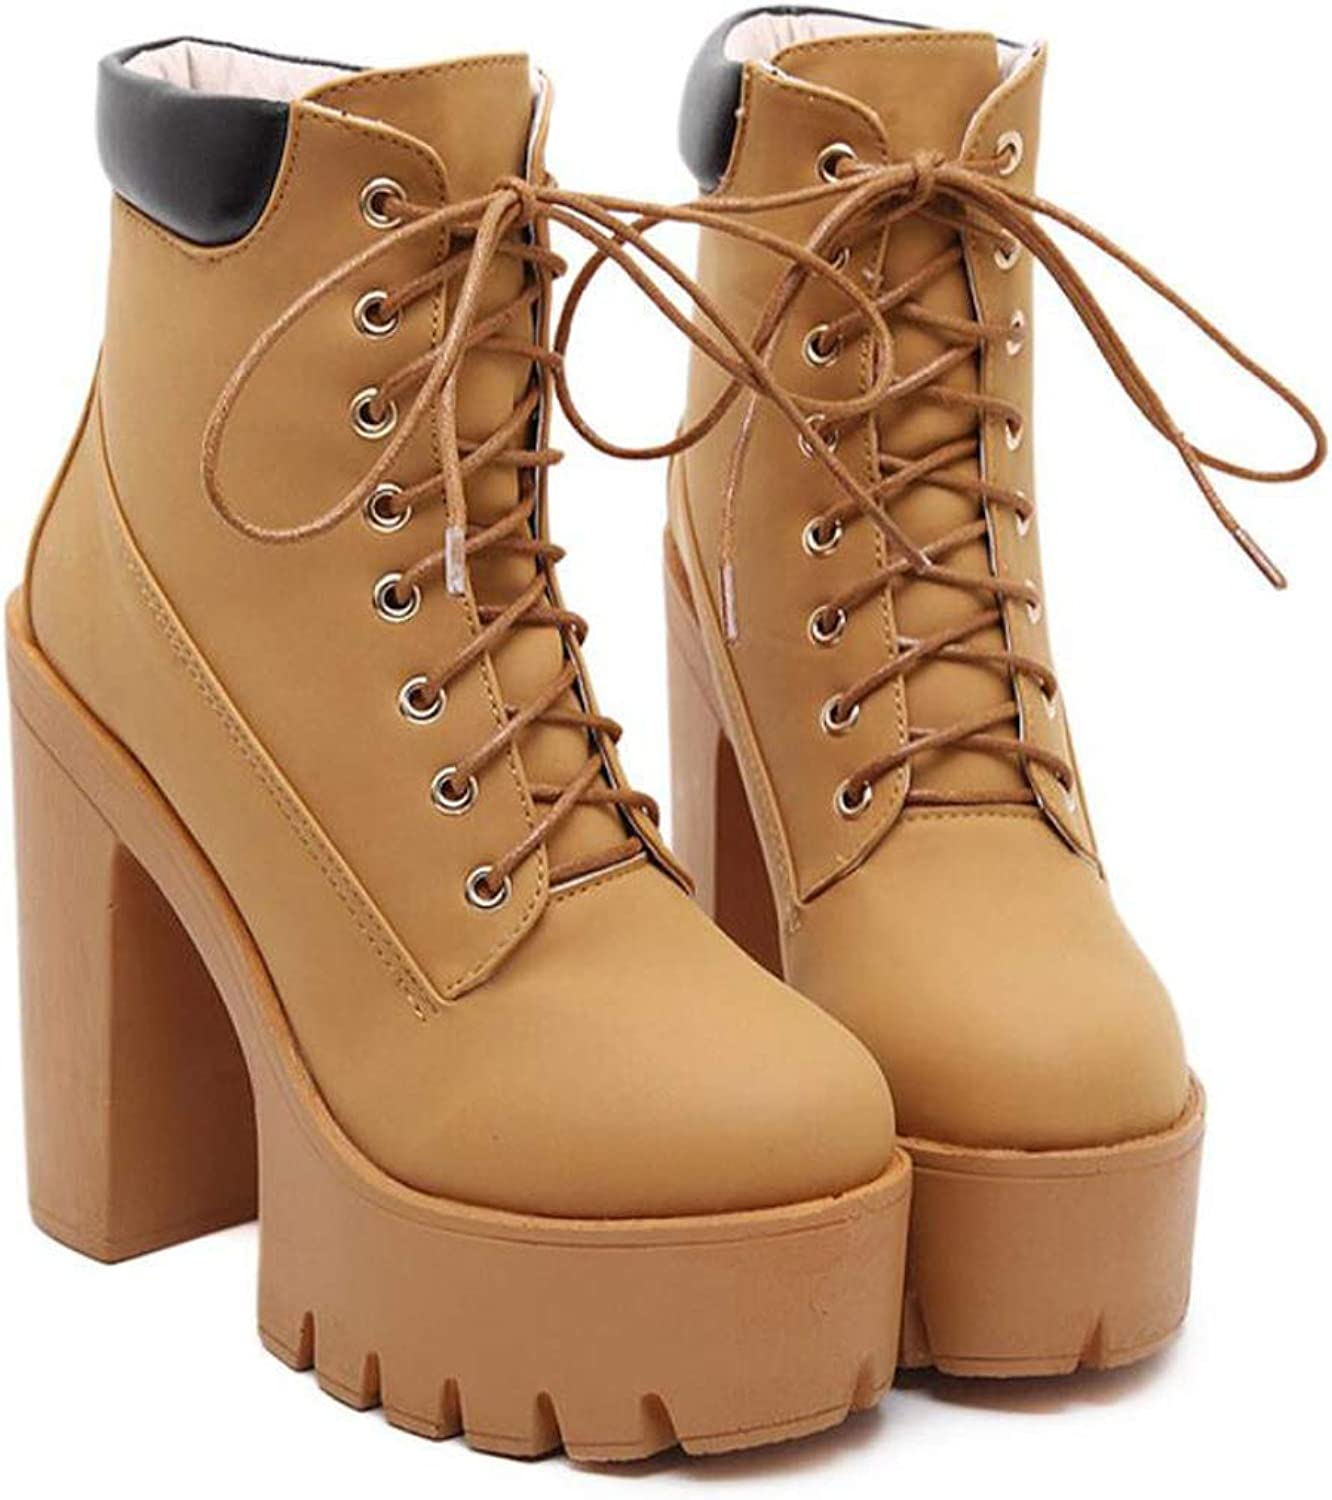 Women's Platform Ankle Boots Super High Heel shoes Lace Up Chunky Heel shoes for Fall Winter